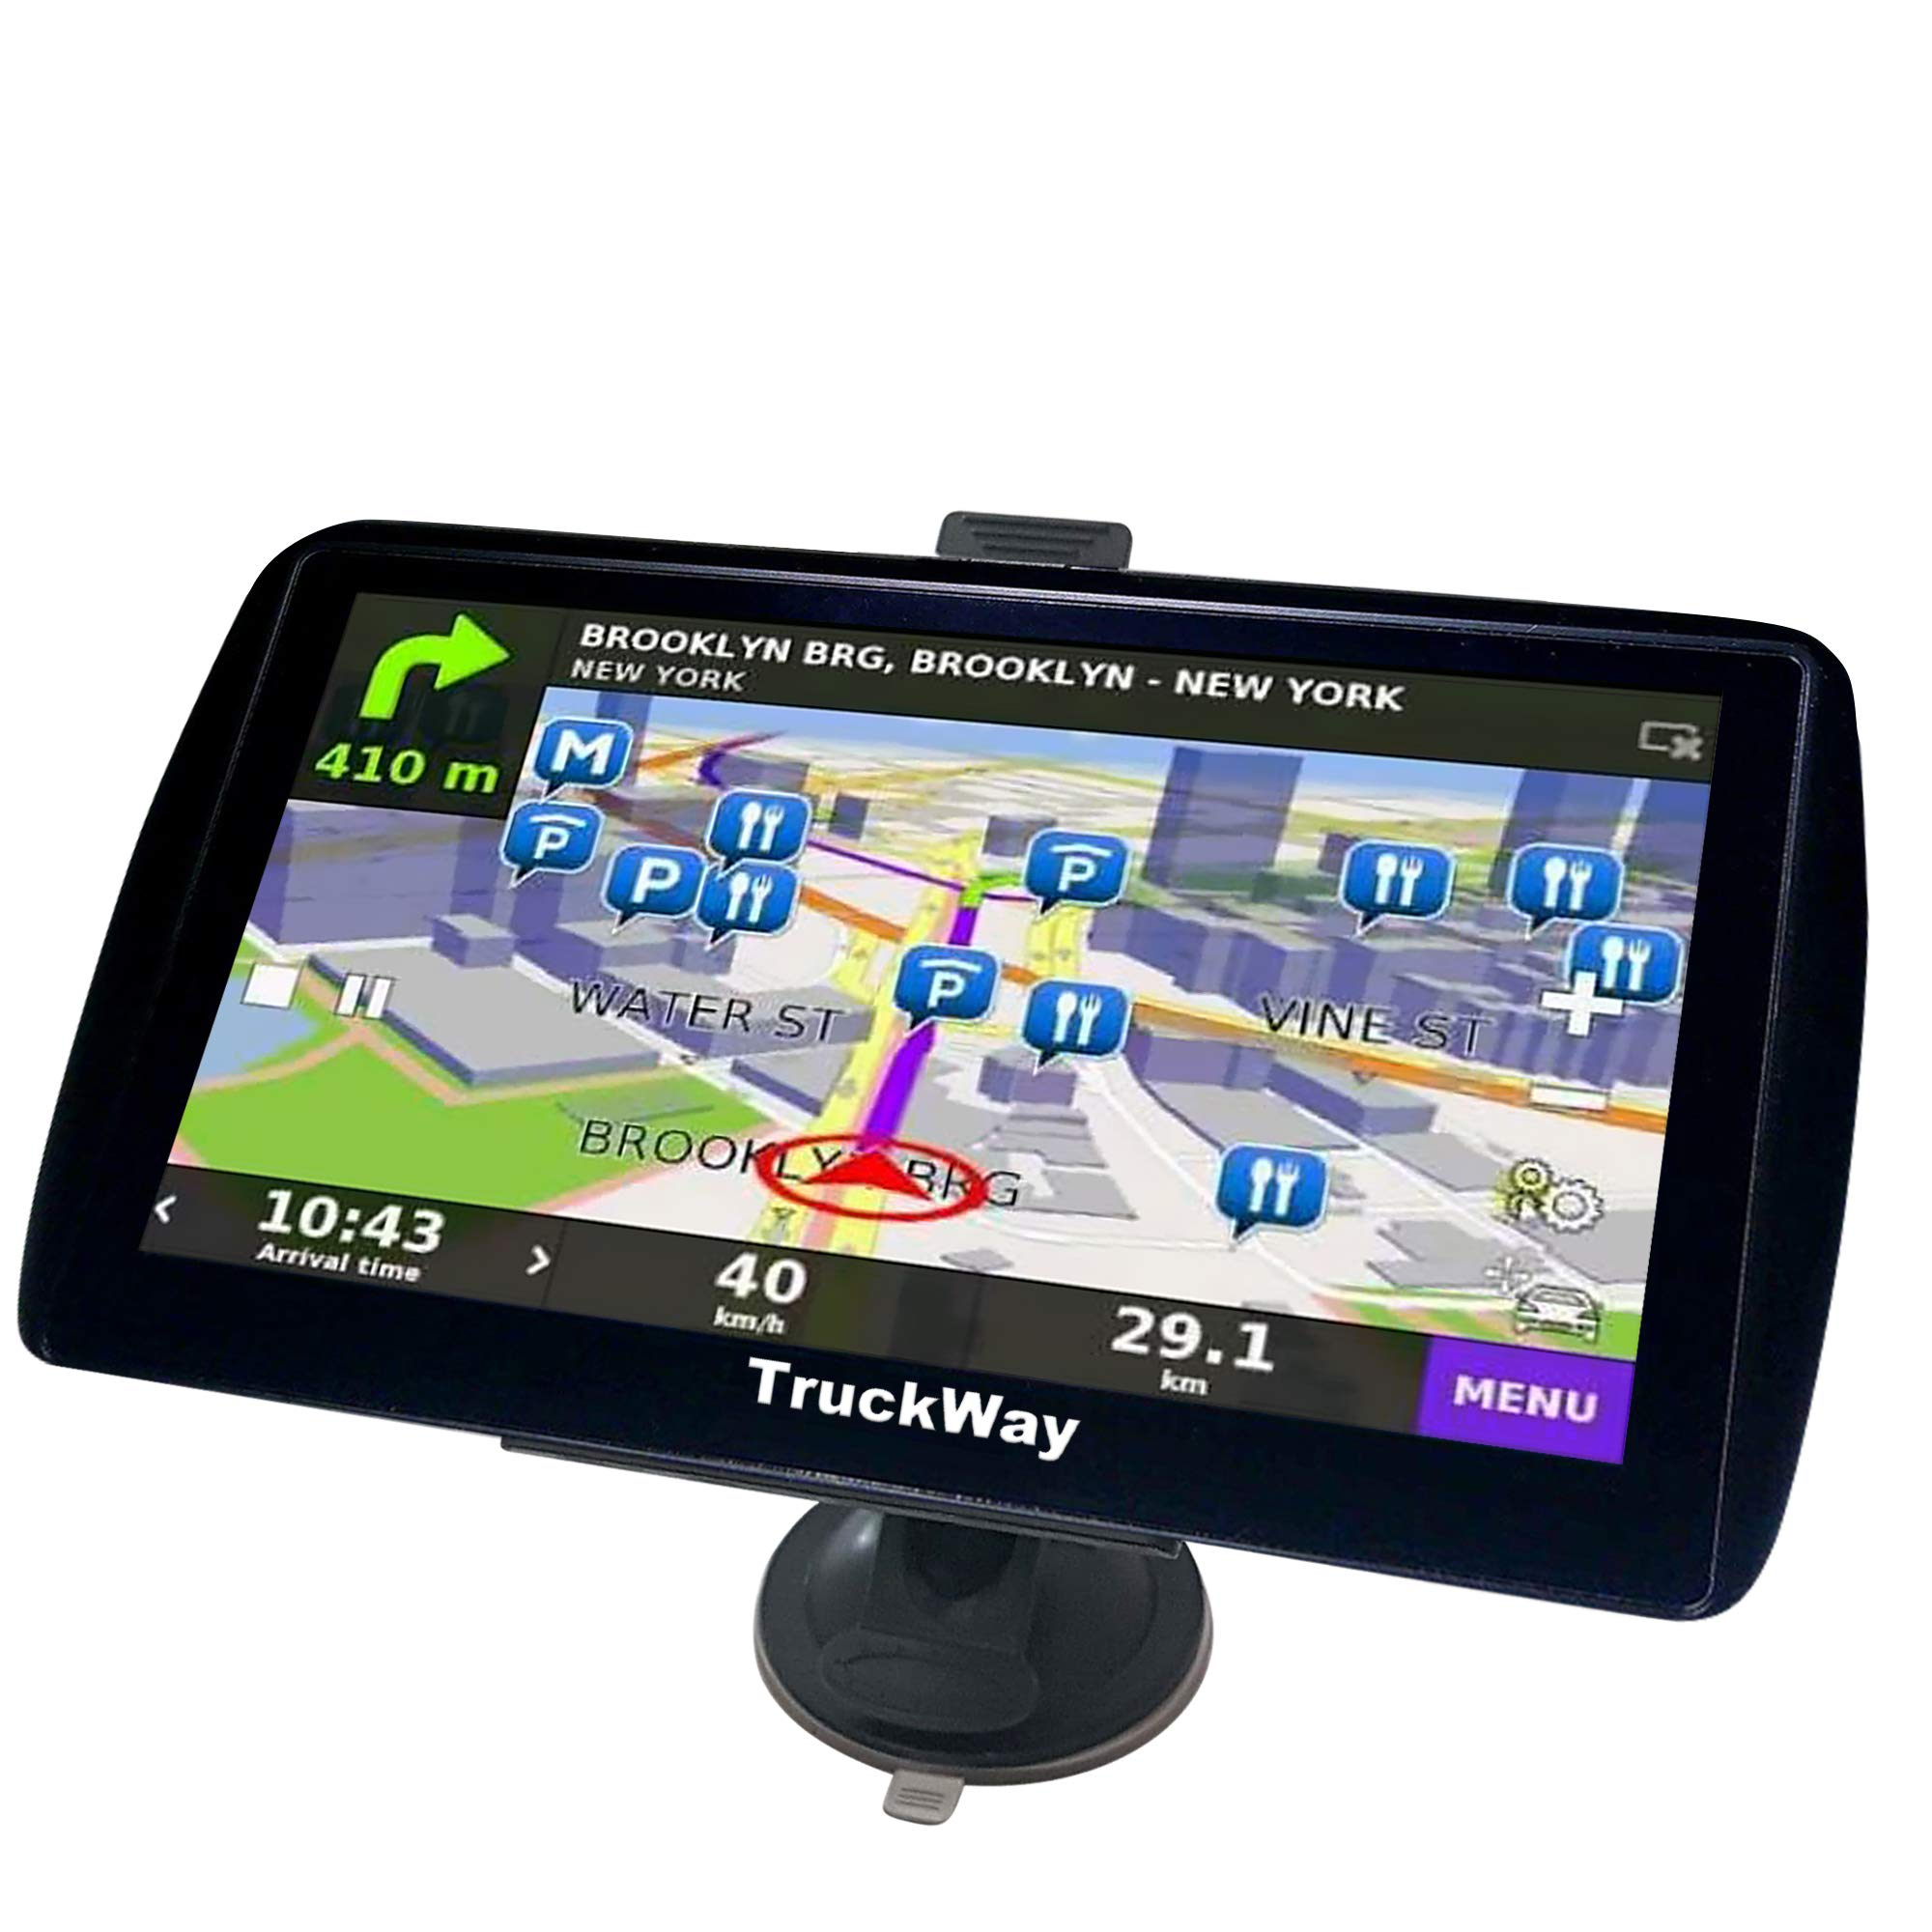 TruckWay GPS - Pro Series Black Edition - Truck GPS 7'' Inch for Truck Navigation Lifetime North America Maps (USA + Canada) 3D & 2D Maps, Touch Screen, Turn by Turn by TruckWay GPS